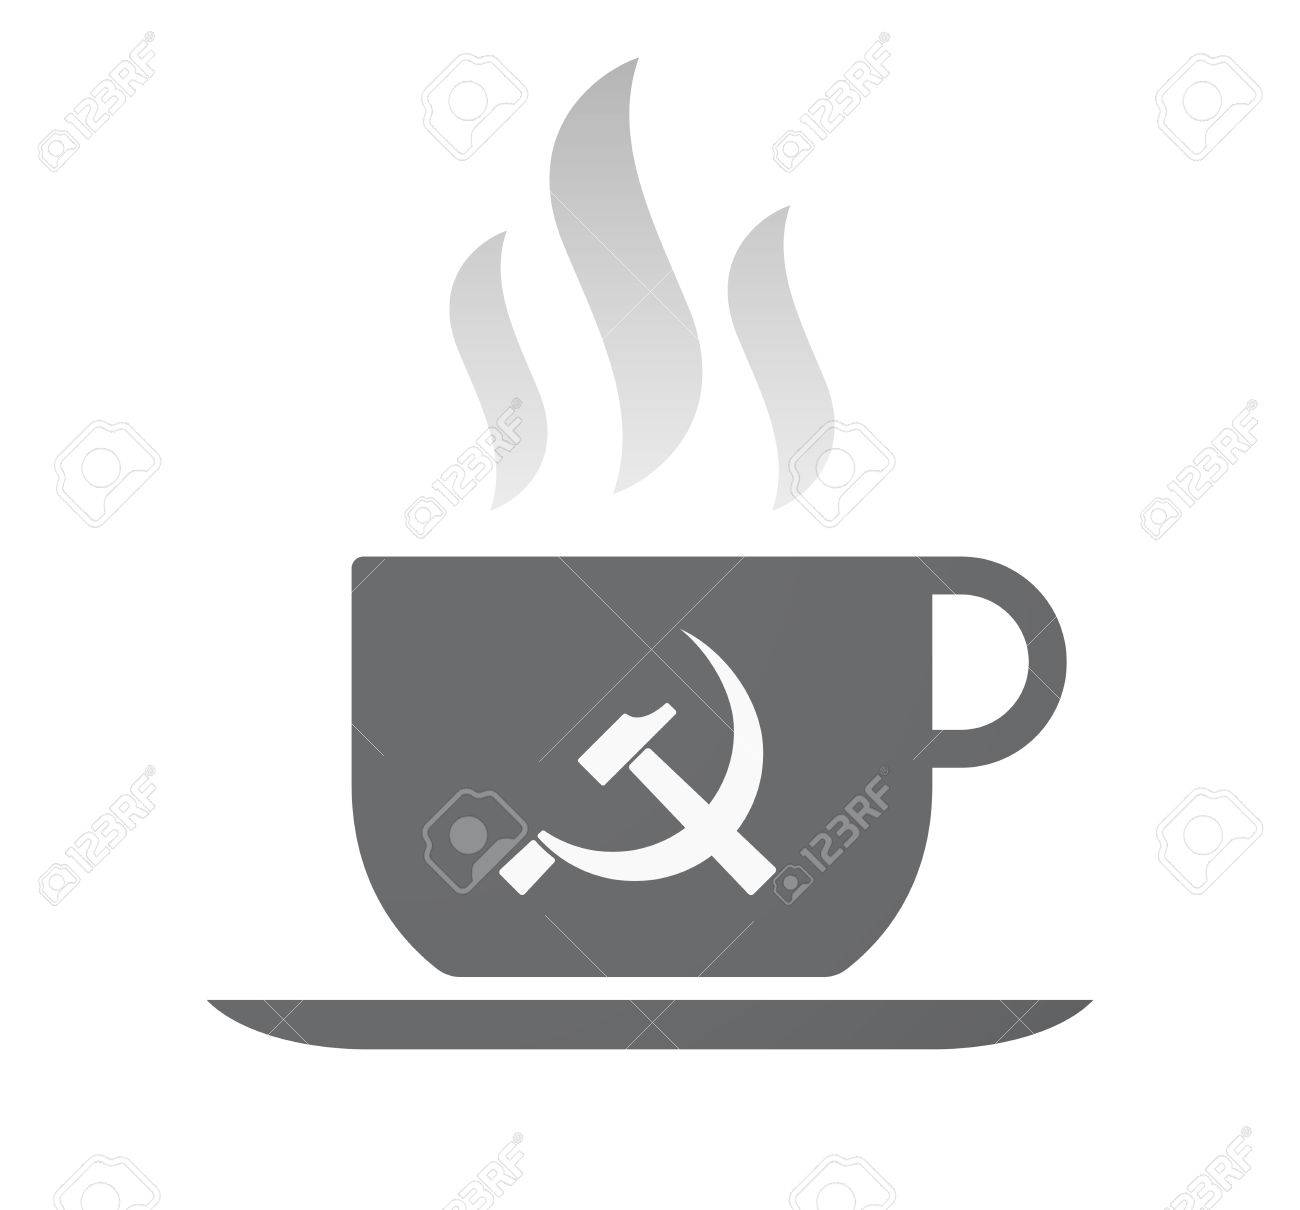 Illustration Of An Isolated Coffee Cup With The Communist Symbol